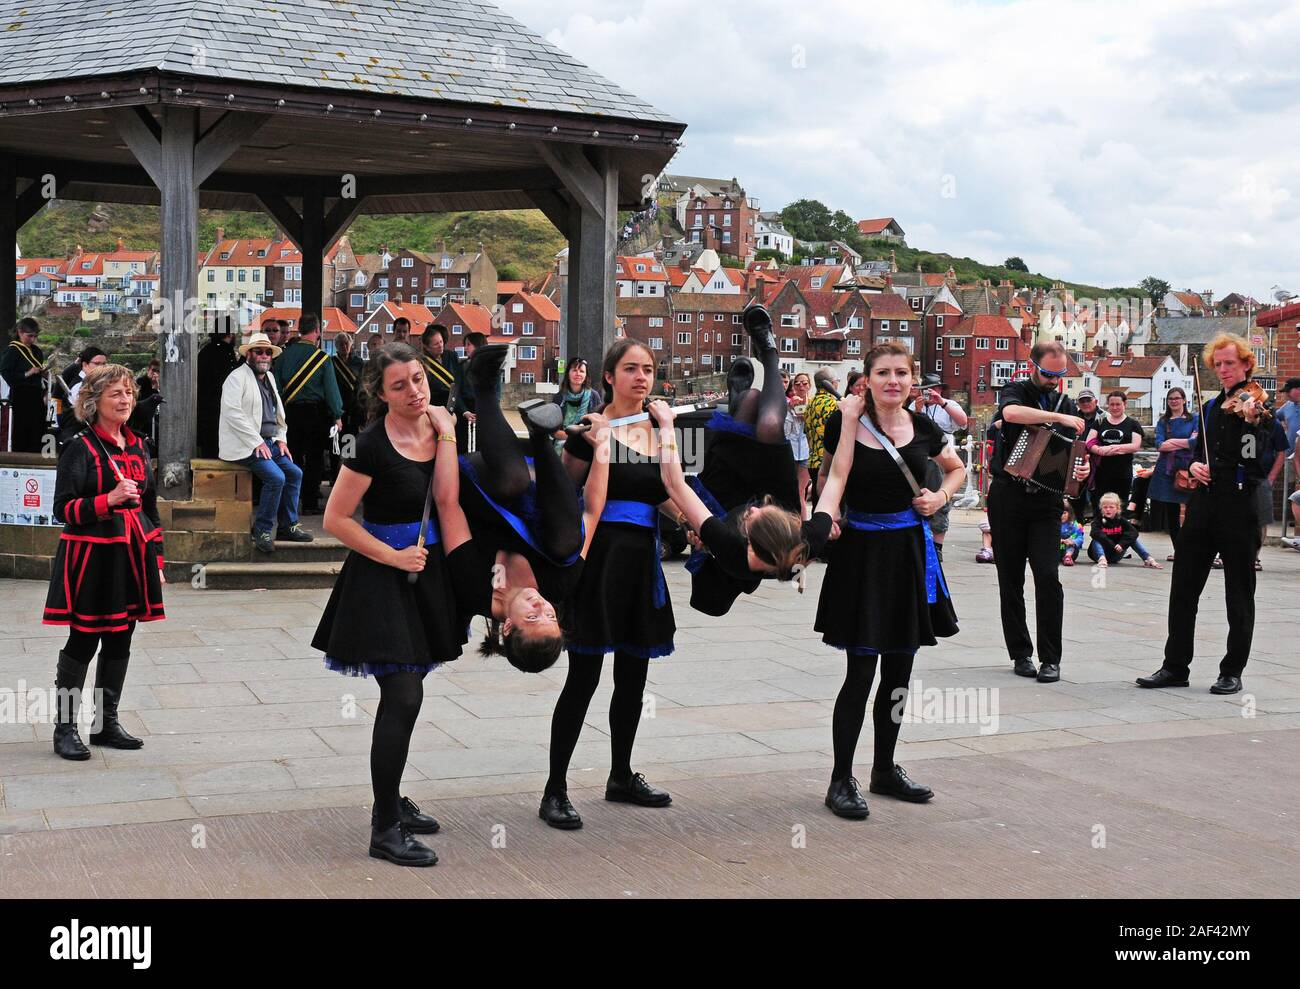 Women's Rapper Sword Team, The Tower Ravens performing at Whitby Folk Week. Stock Photo